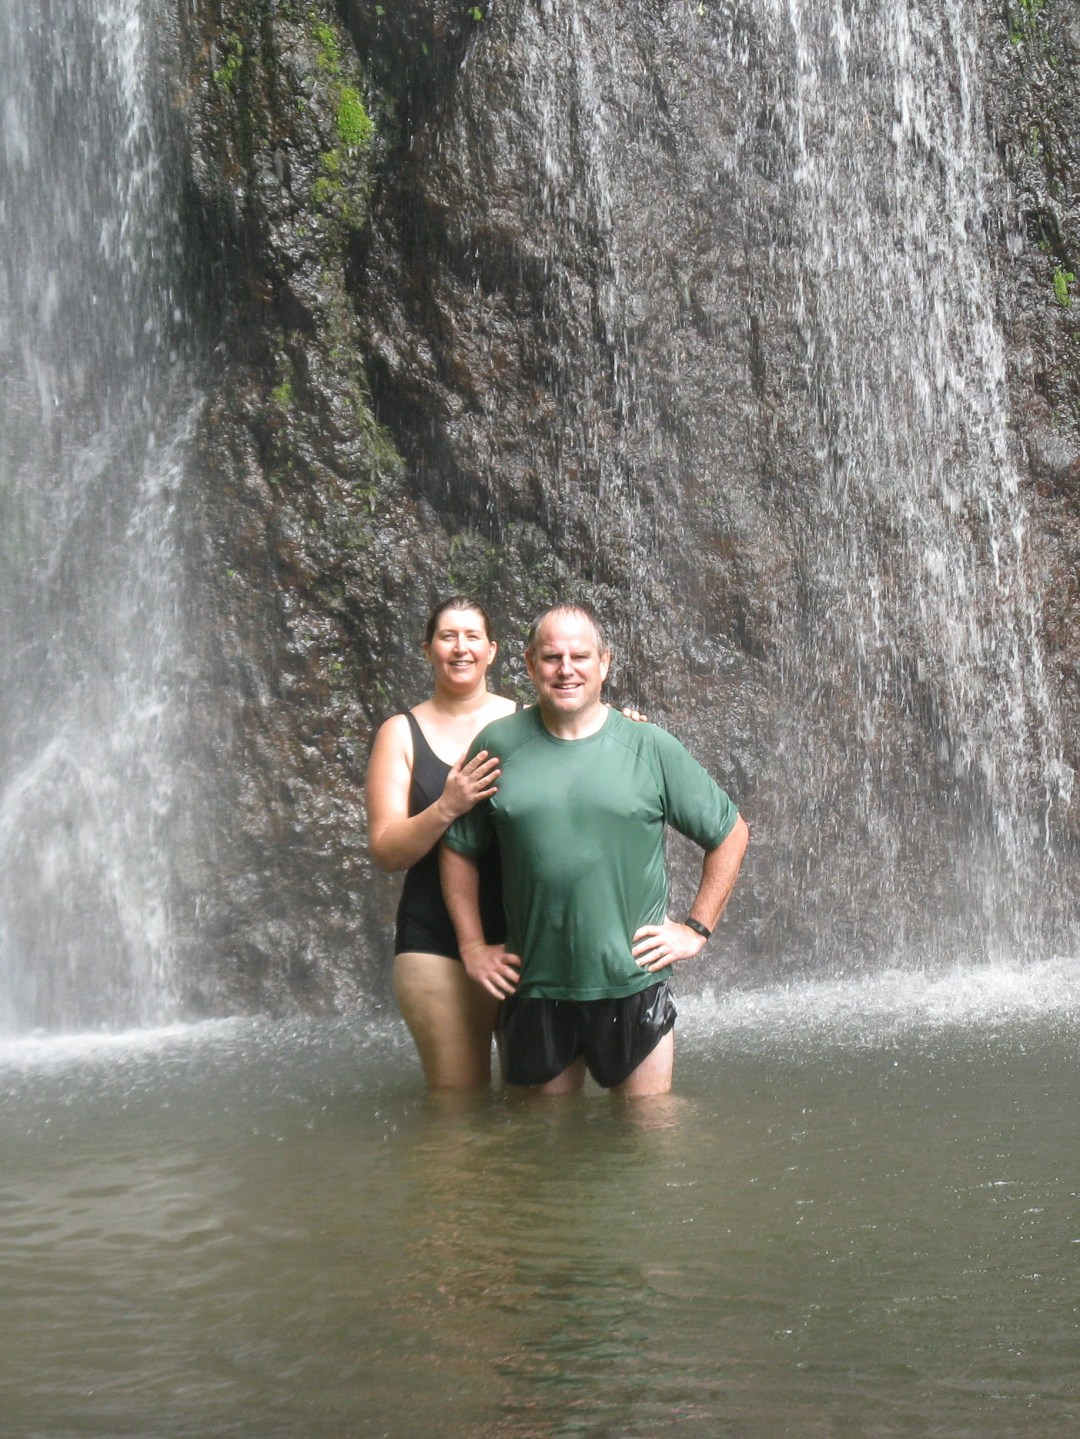 With Mark at the falls